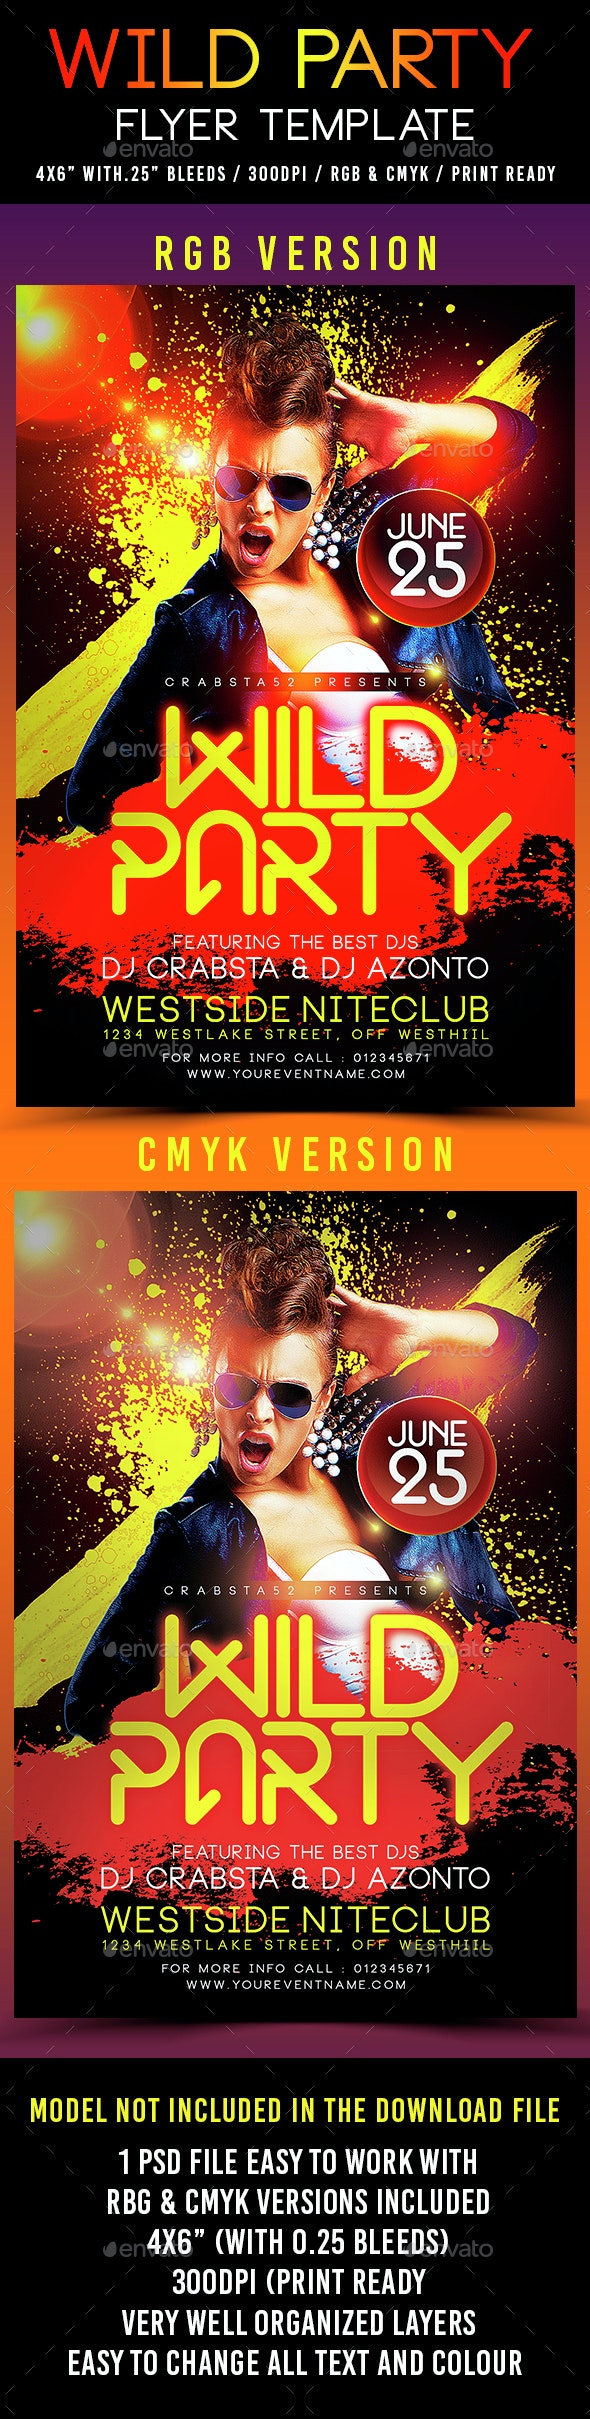 Wild Party Flyer Template - Clubs & Parties Events